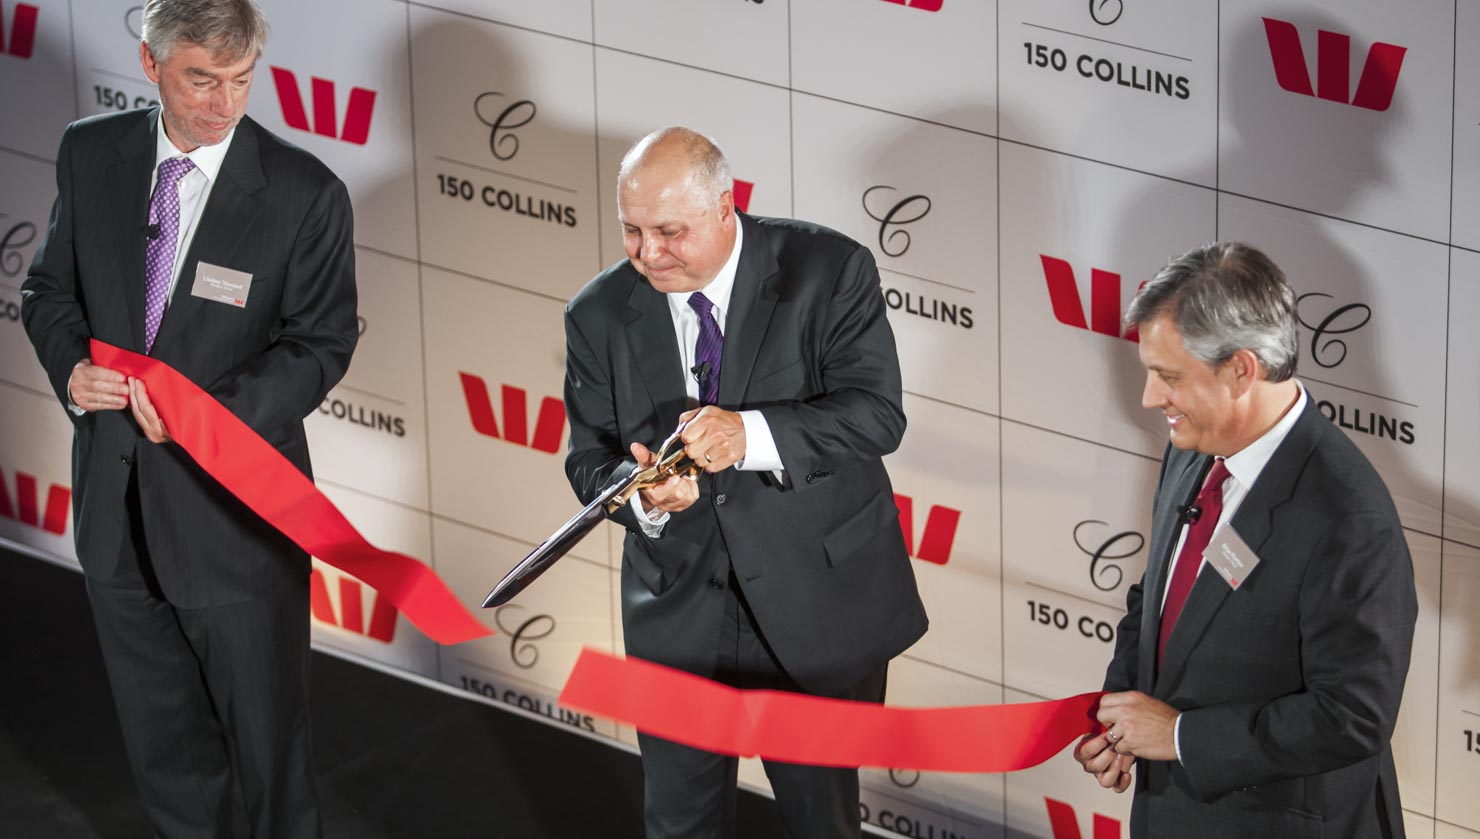 Executive cuts ribbon at Westpac launch event